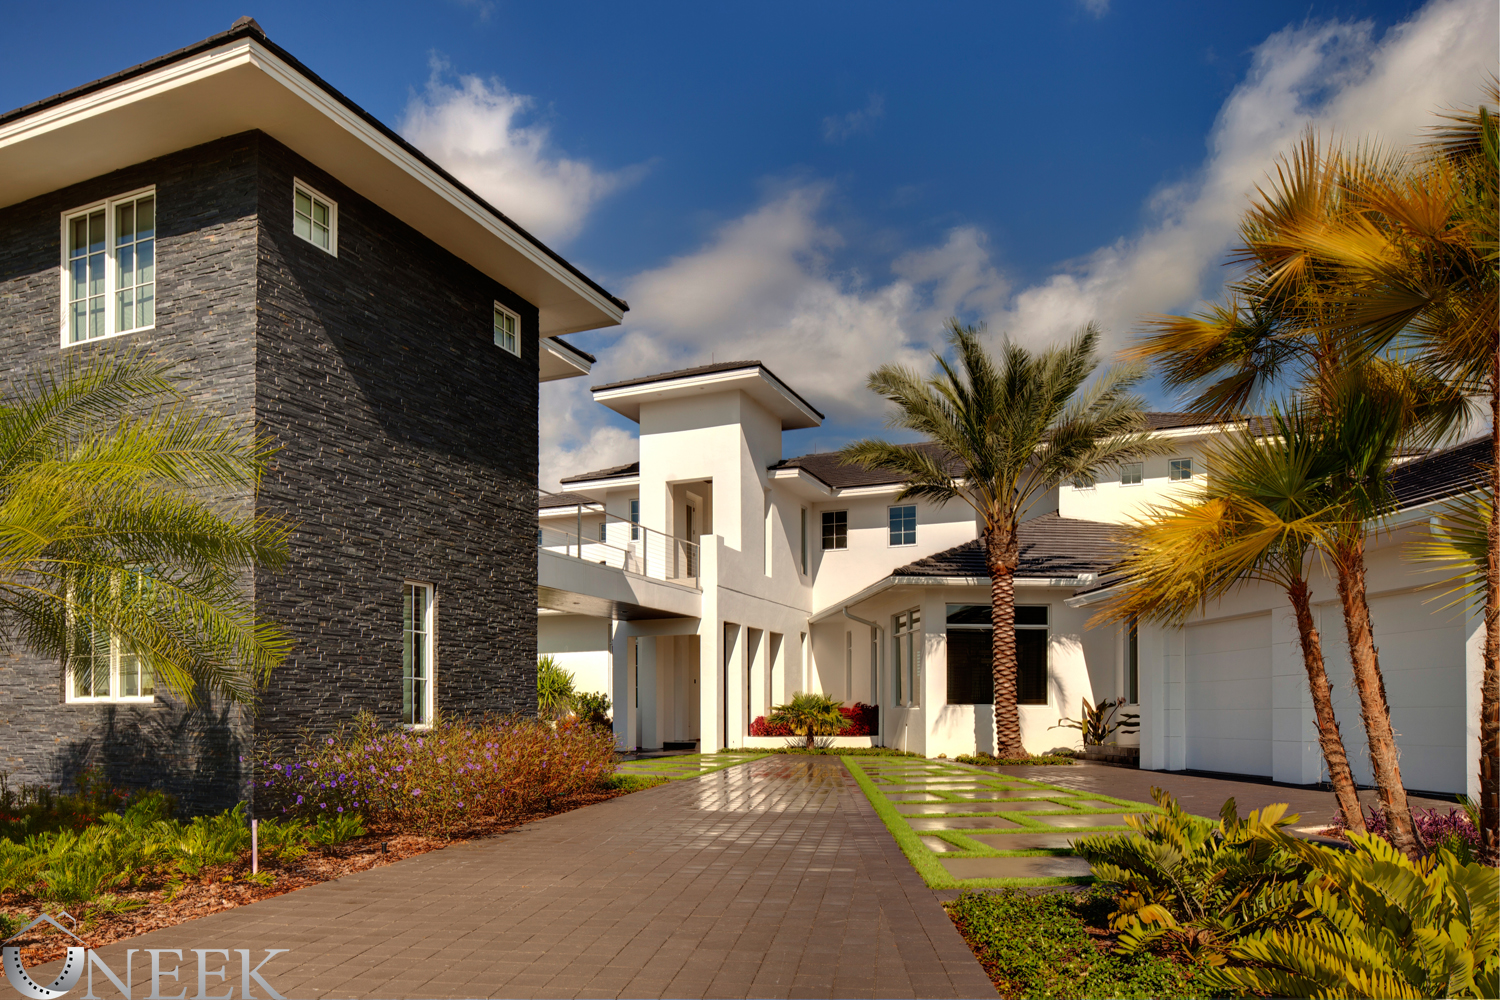 AMAZING LUXURY HOME 39 TOUCHDOWN 39 IN EVERY WAY SELECTED AS